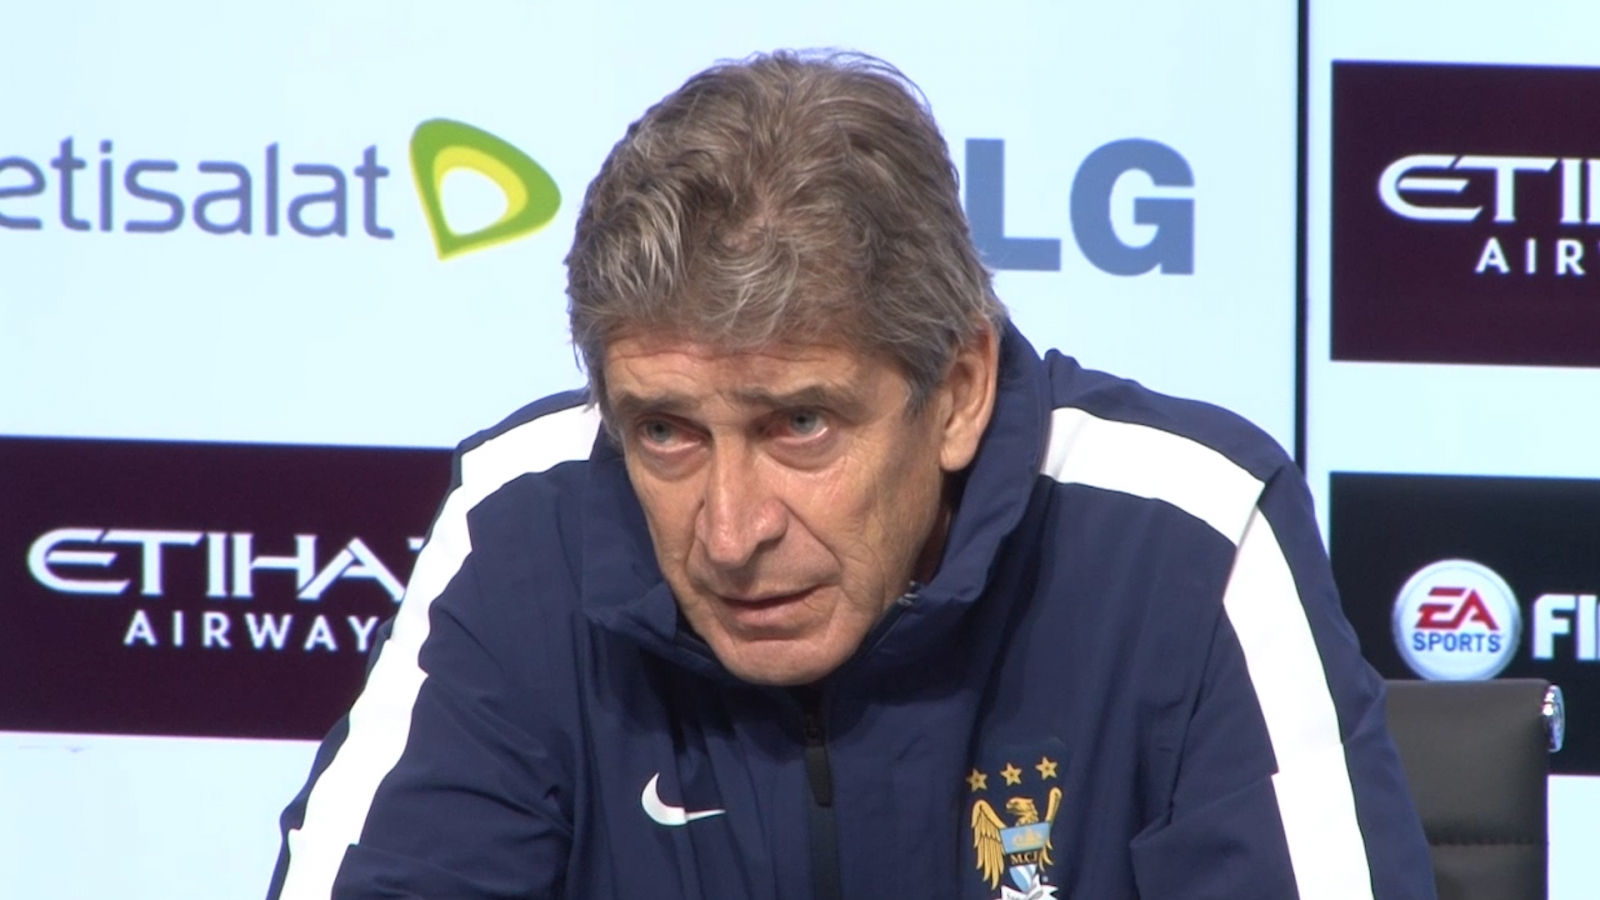 Manuel Pellegrini: We are not thinking about Chelsea